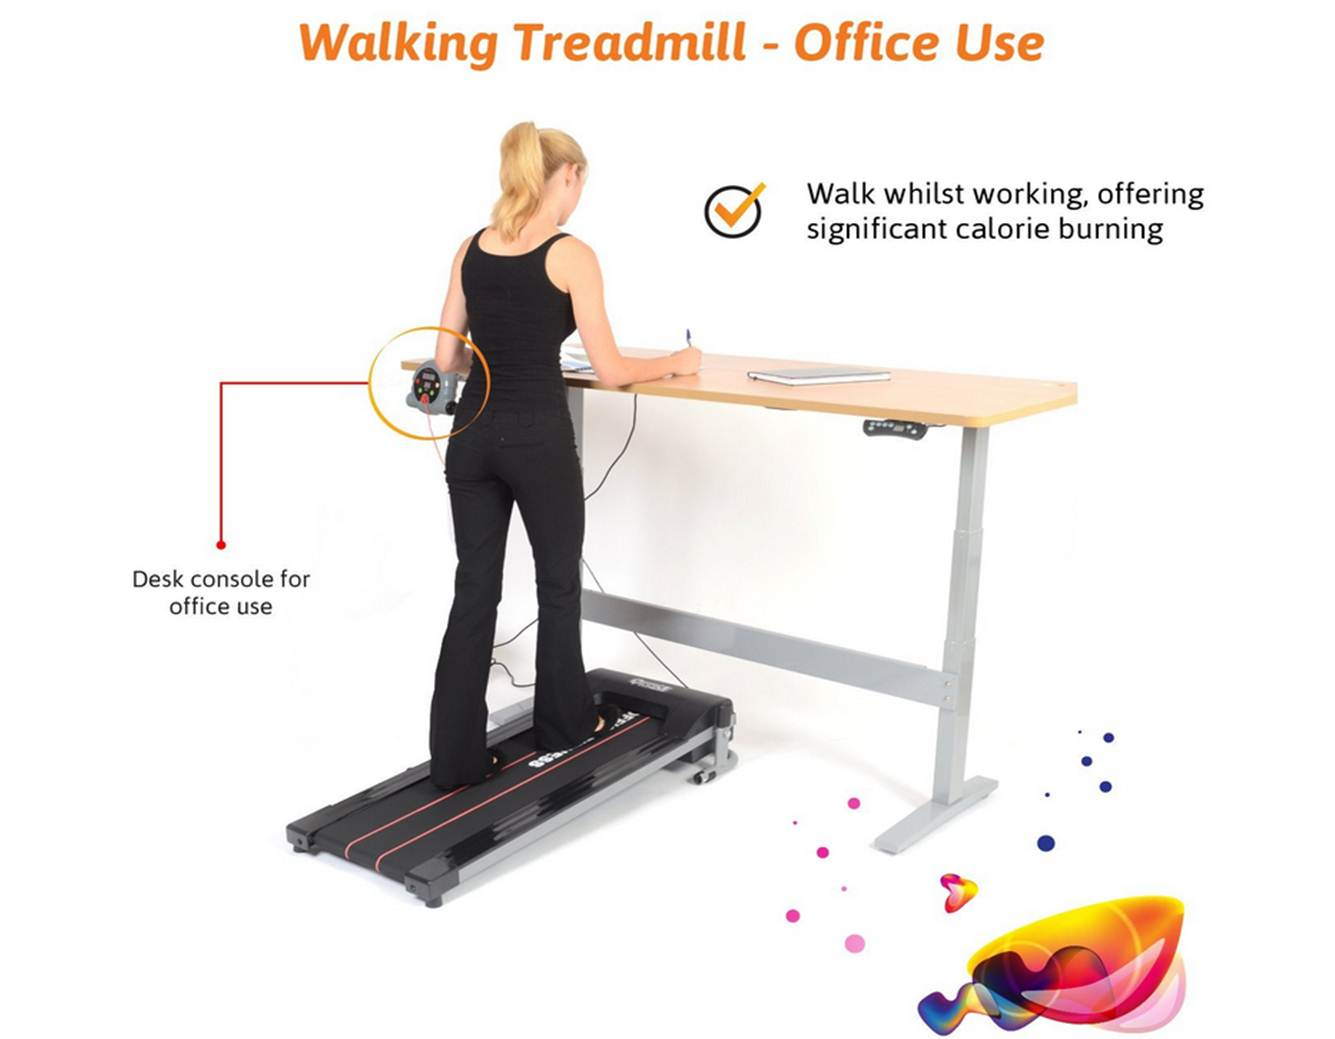 Office Fitness Dual Purpose Walking Treadmill